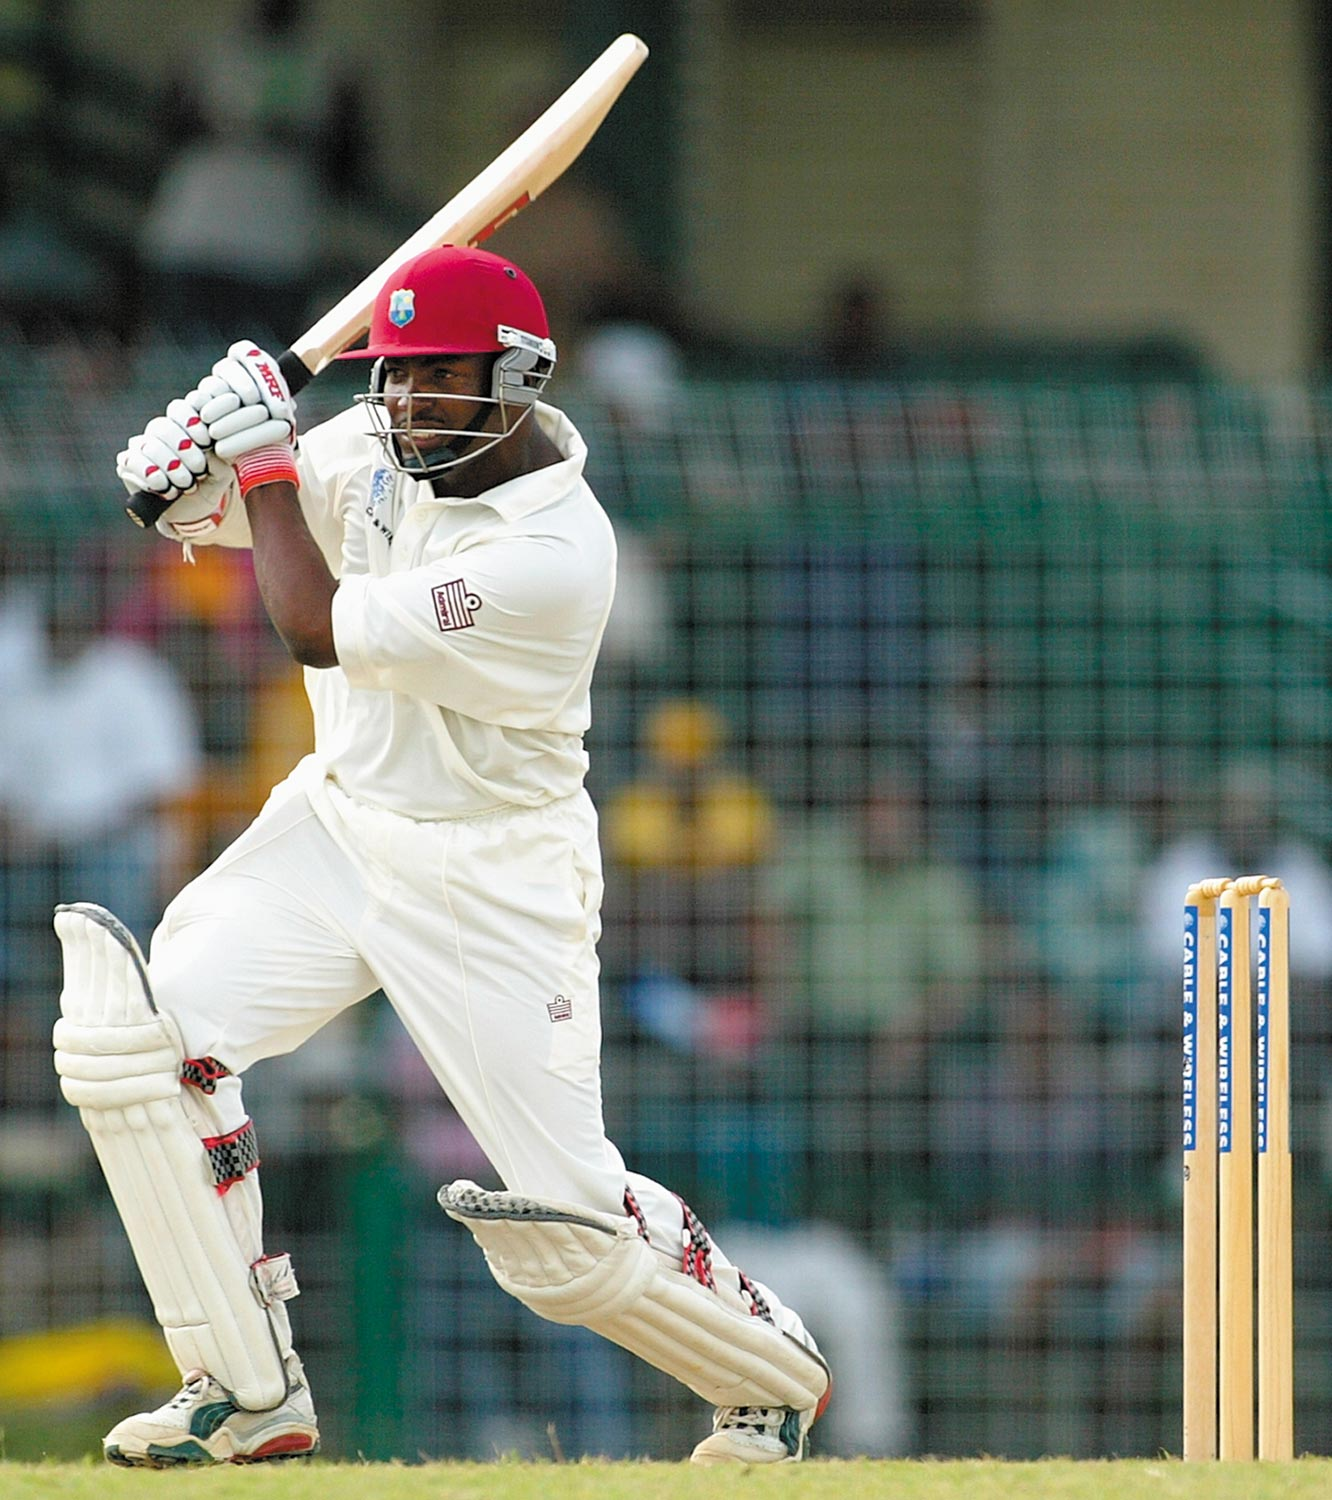 Brian Lara of the West Indies in action. Photo by Hamish Blair/Getty Images